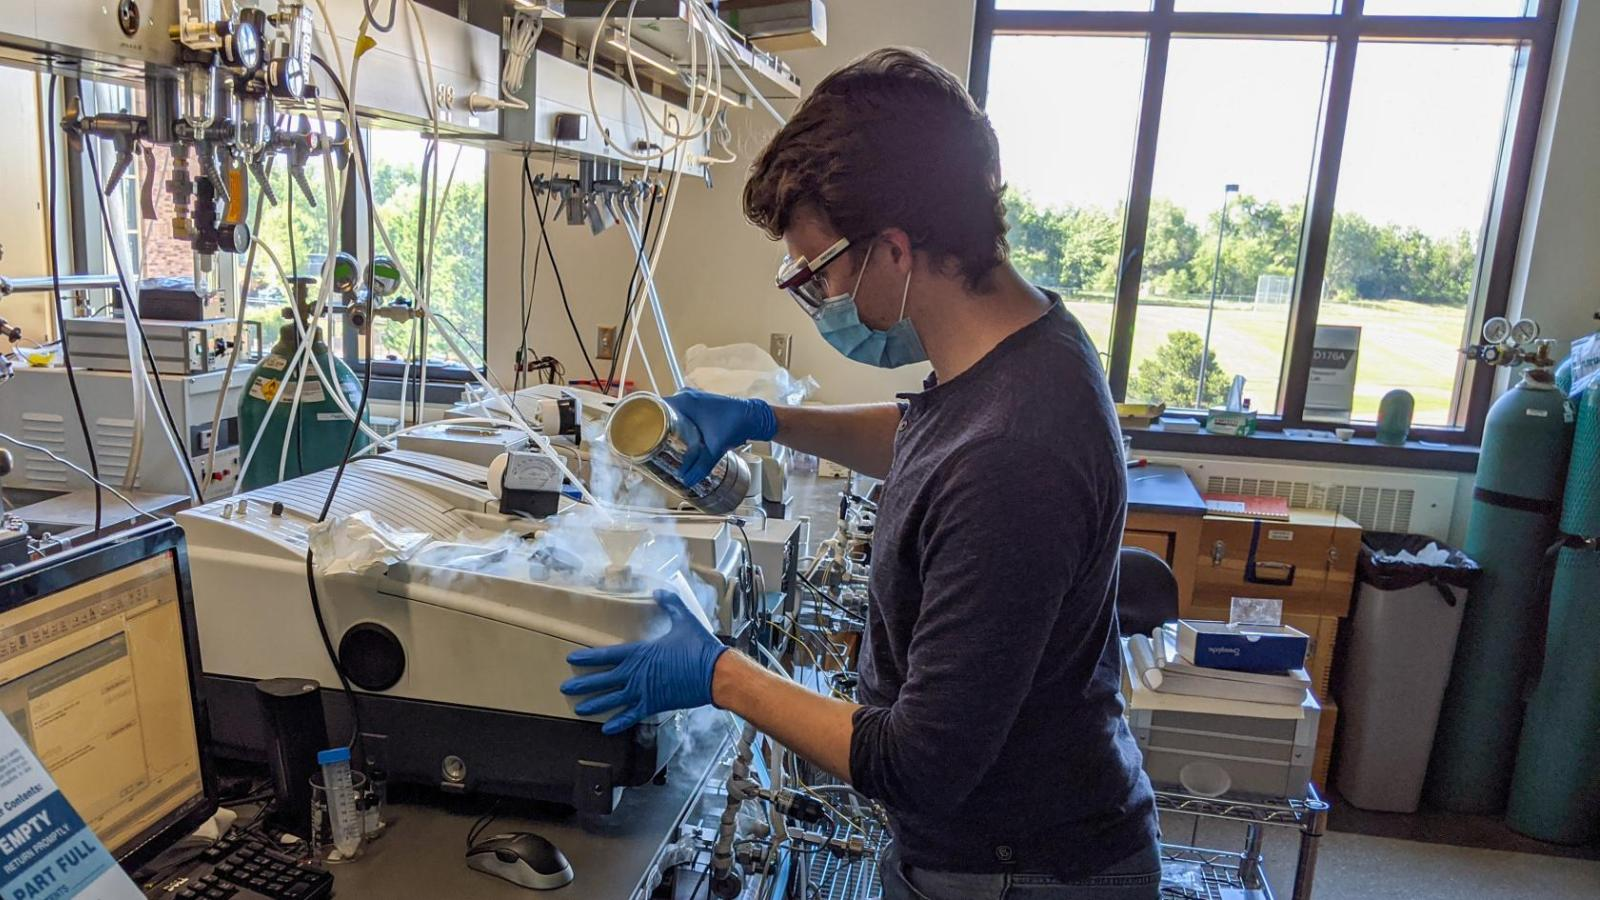 Alex Jenkins working in the Medlin Lab with PPE